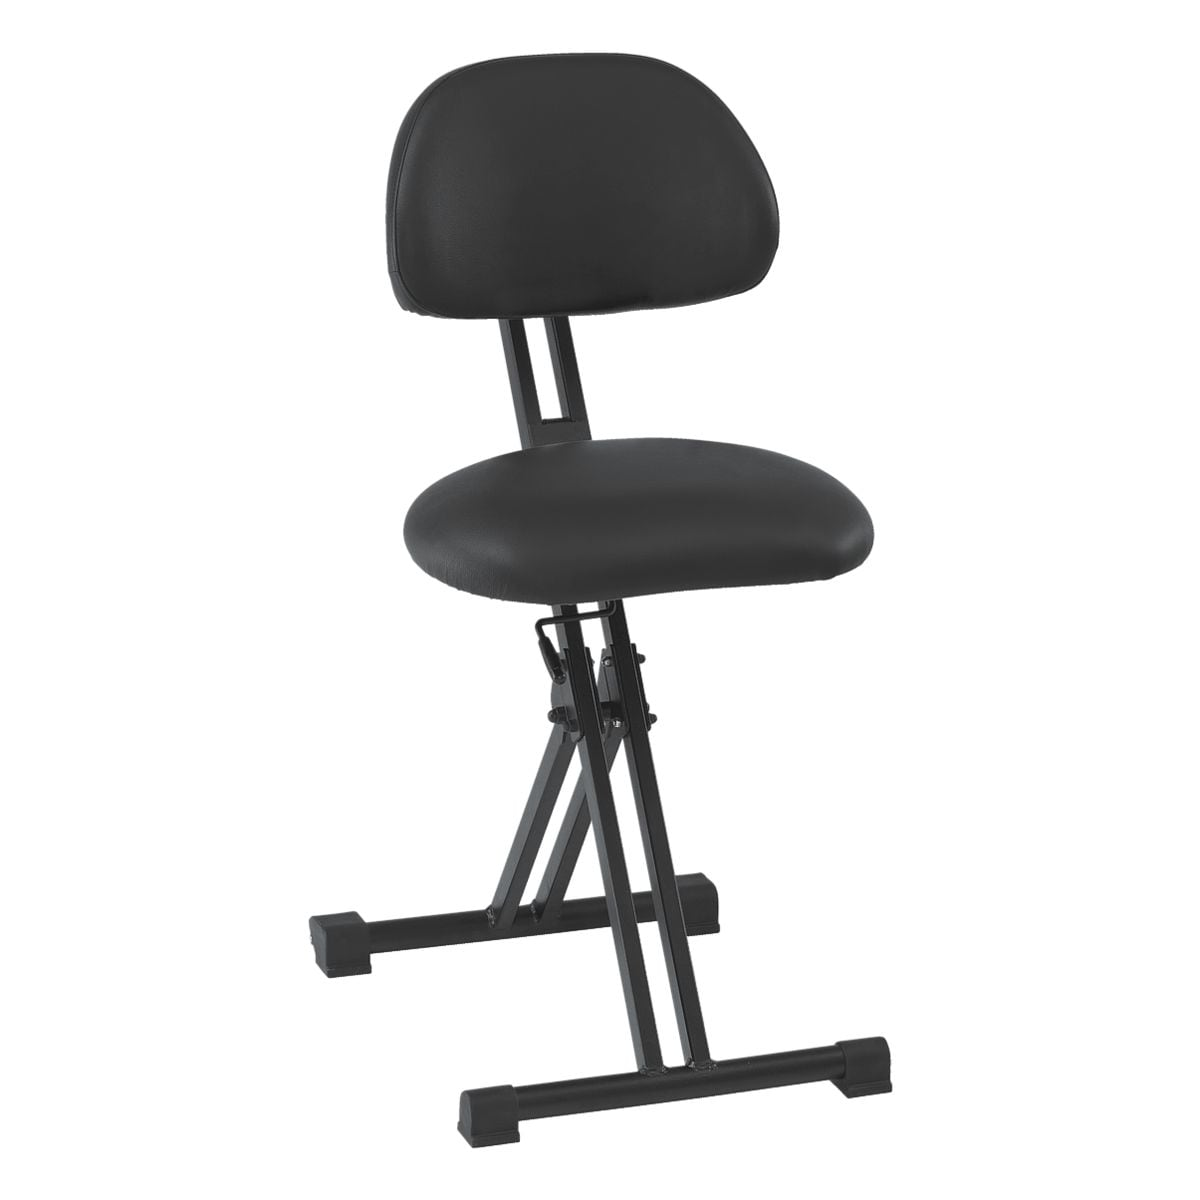 xxl desk chair revolving meaning in hindi mey systems gmbh stehhilfe af sr bei otto